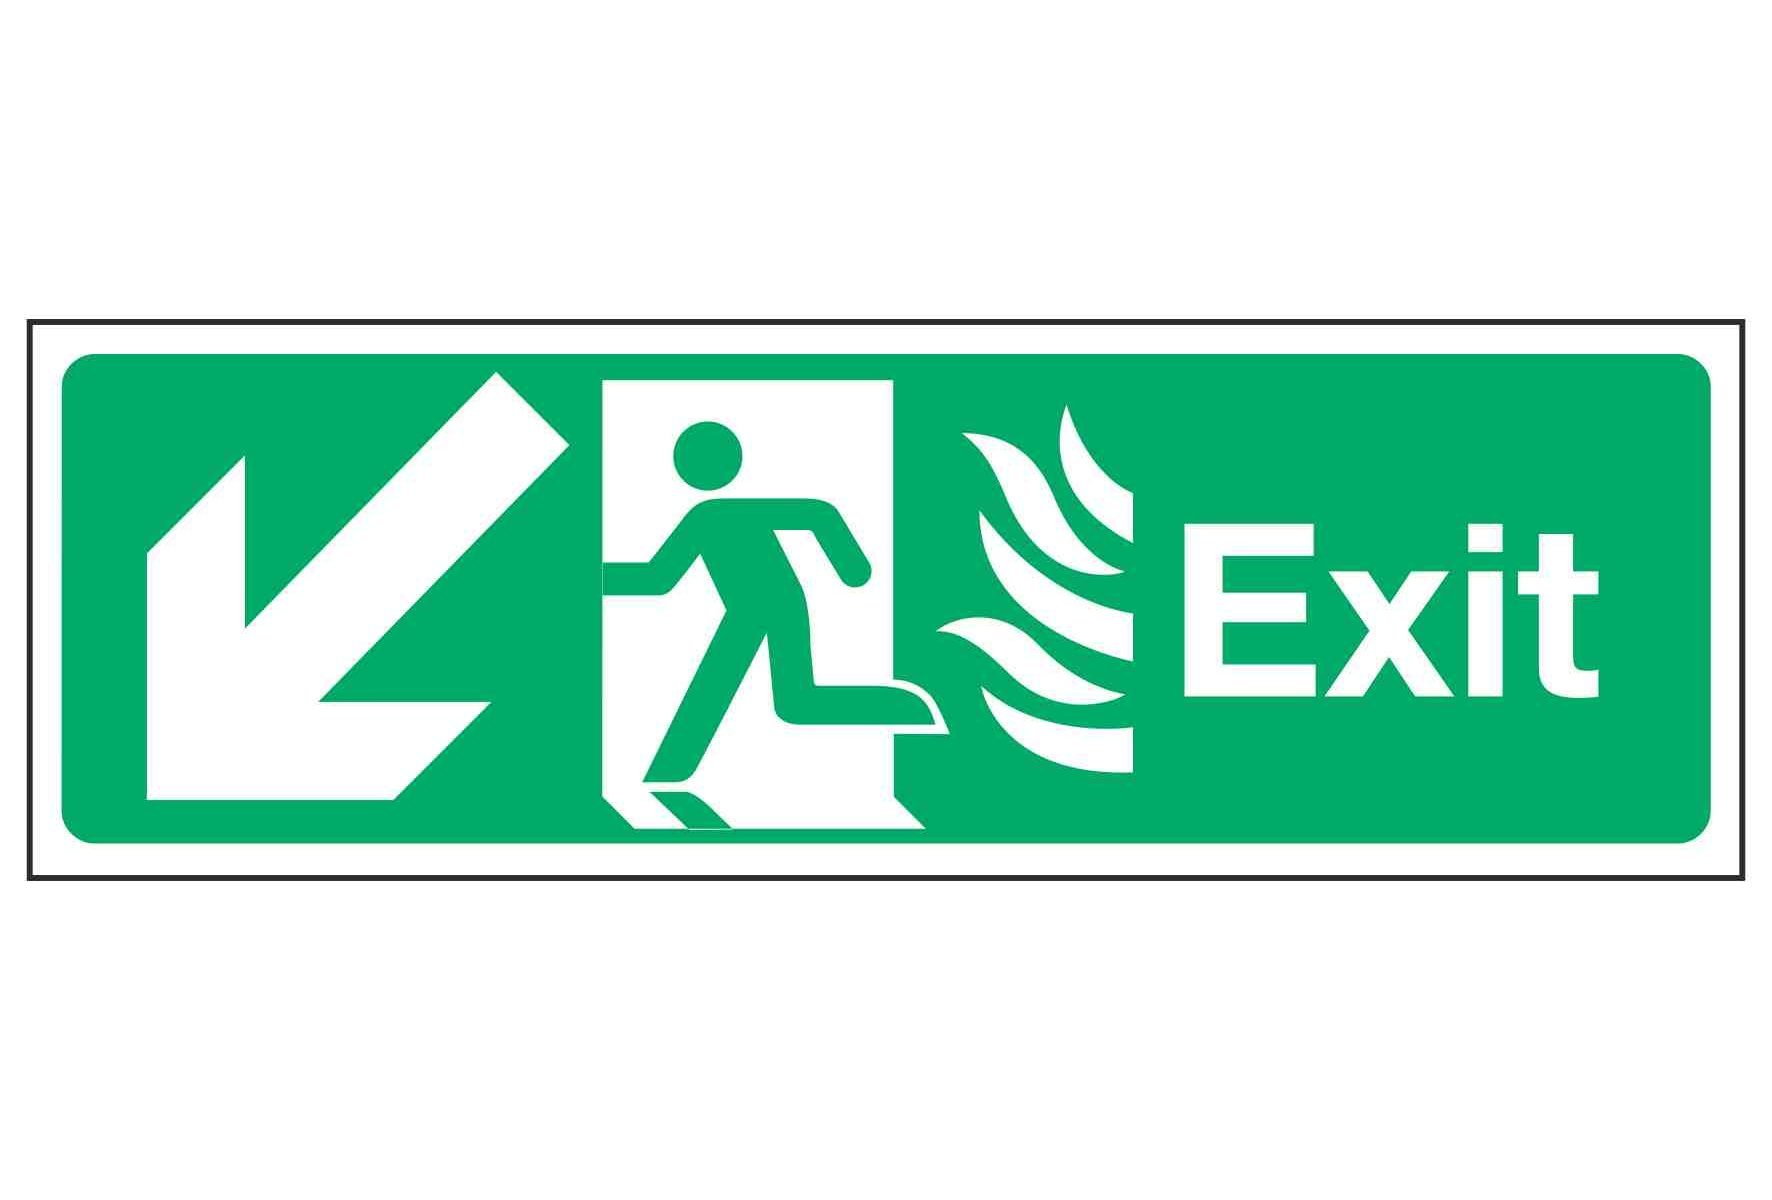 Exit / Arrow Down Left - NHS